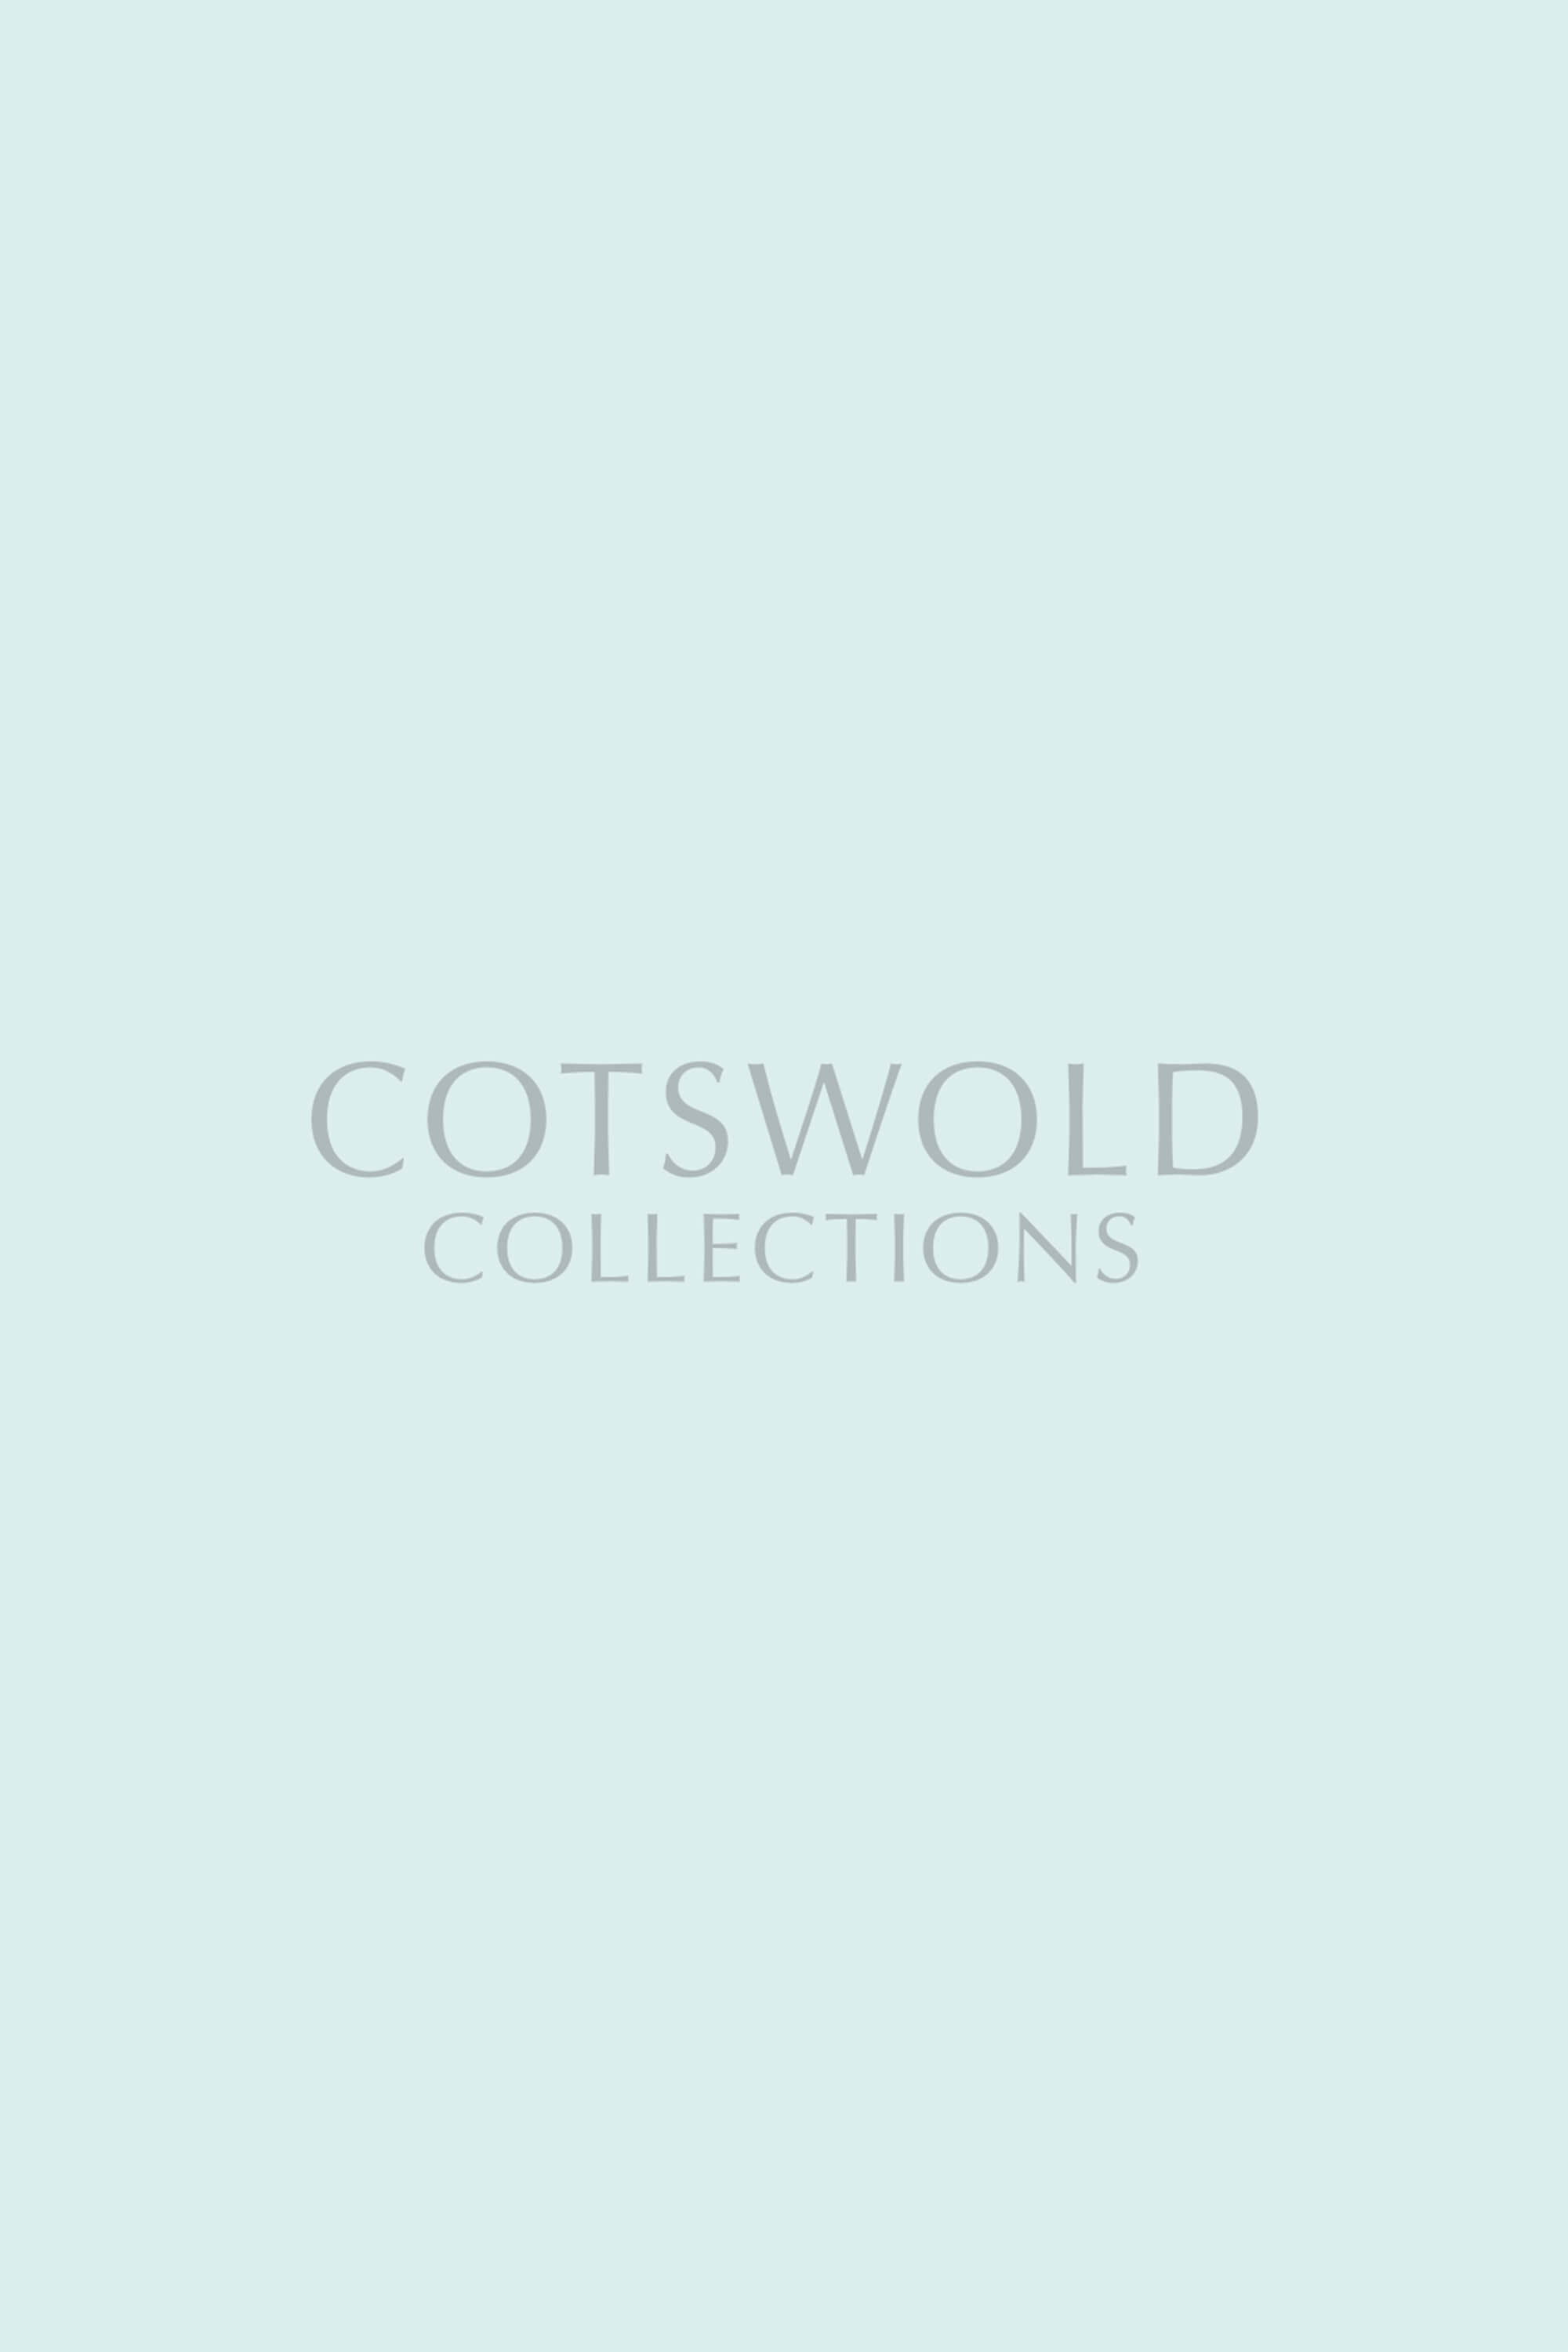 Cotswold lavender conditioner GH928